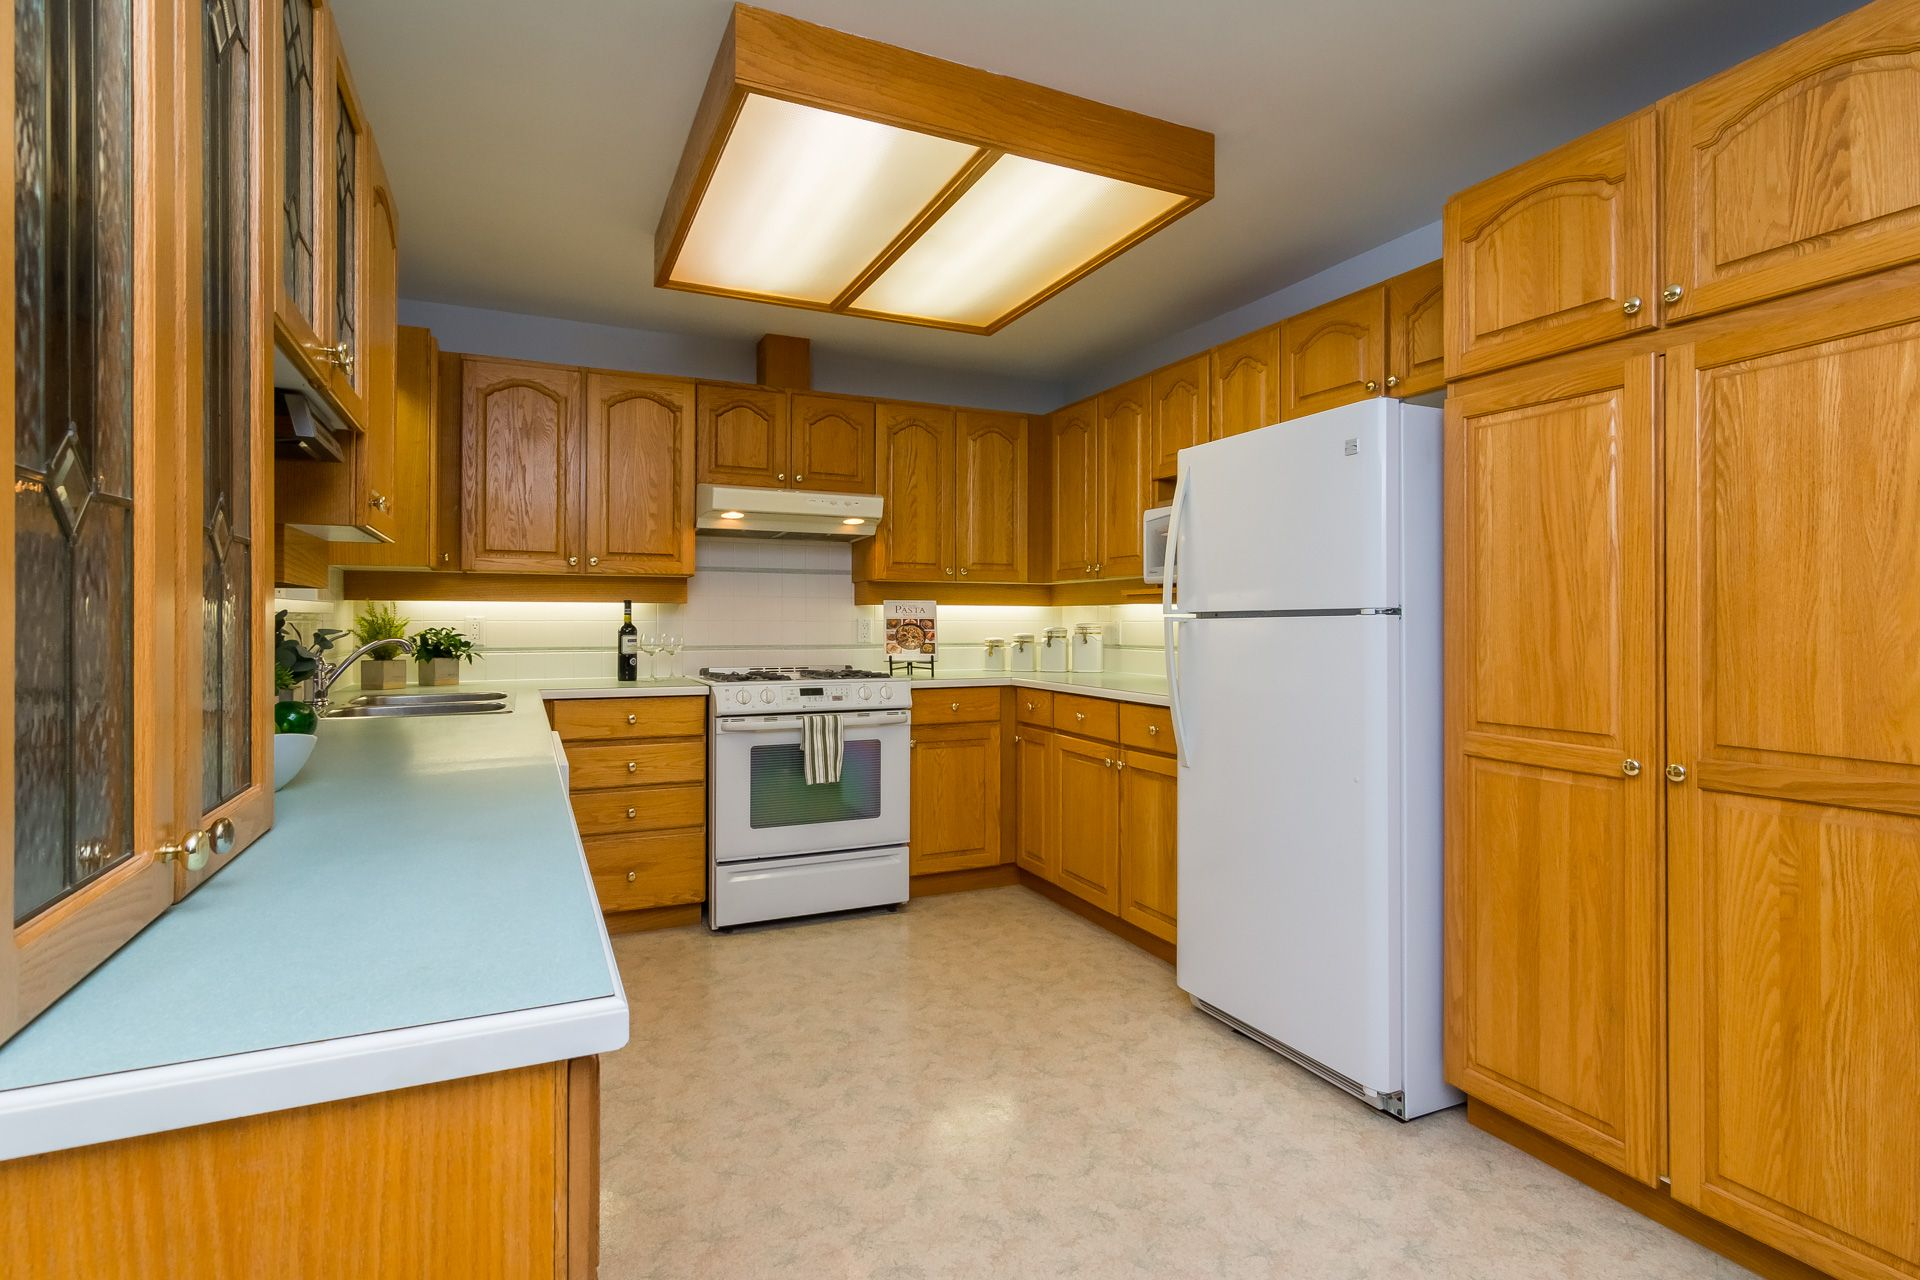 """Photo 14: Photos: 19941 37 Avenue in Langley: Brookswood Langley House for sale in """"Brookswood"""" : MLS®# R2240474"""